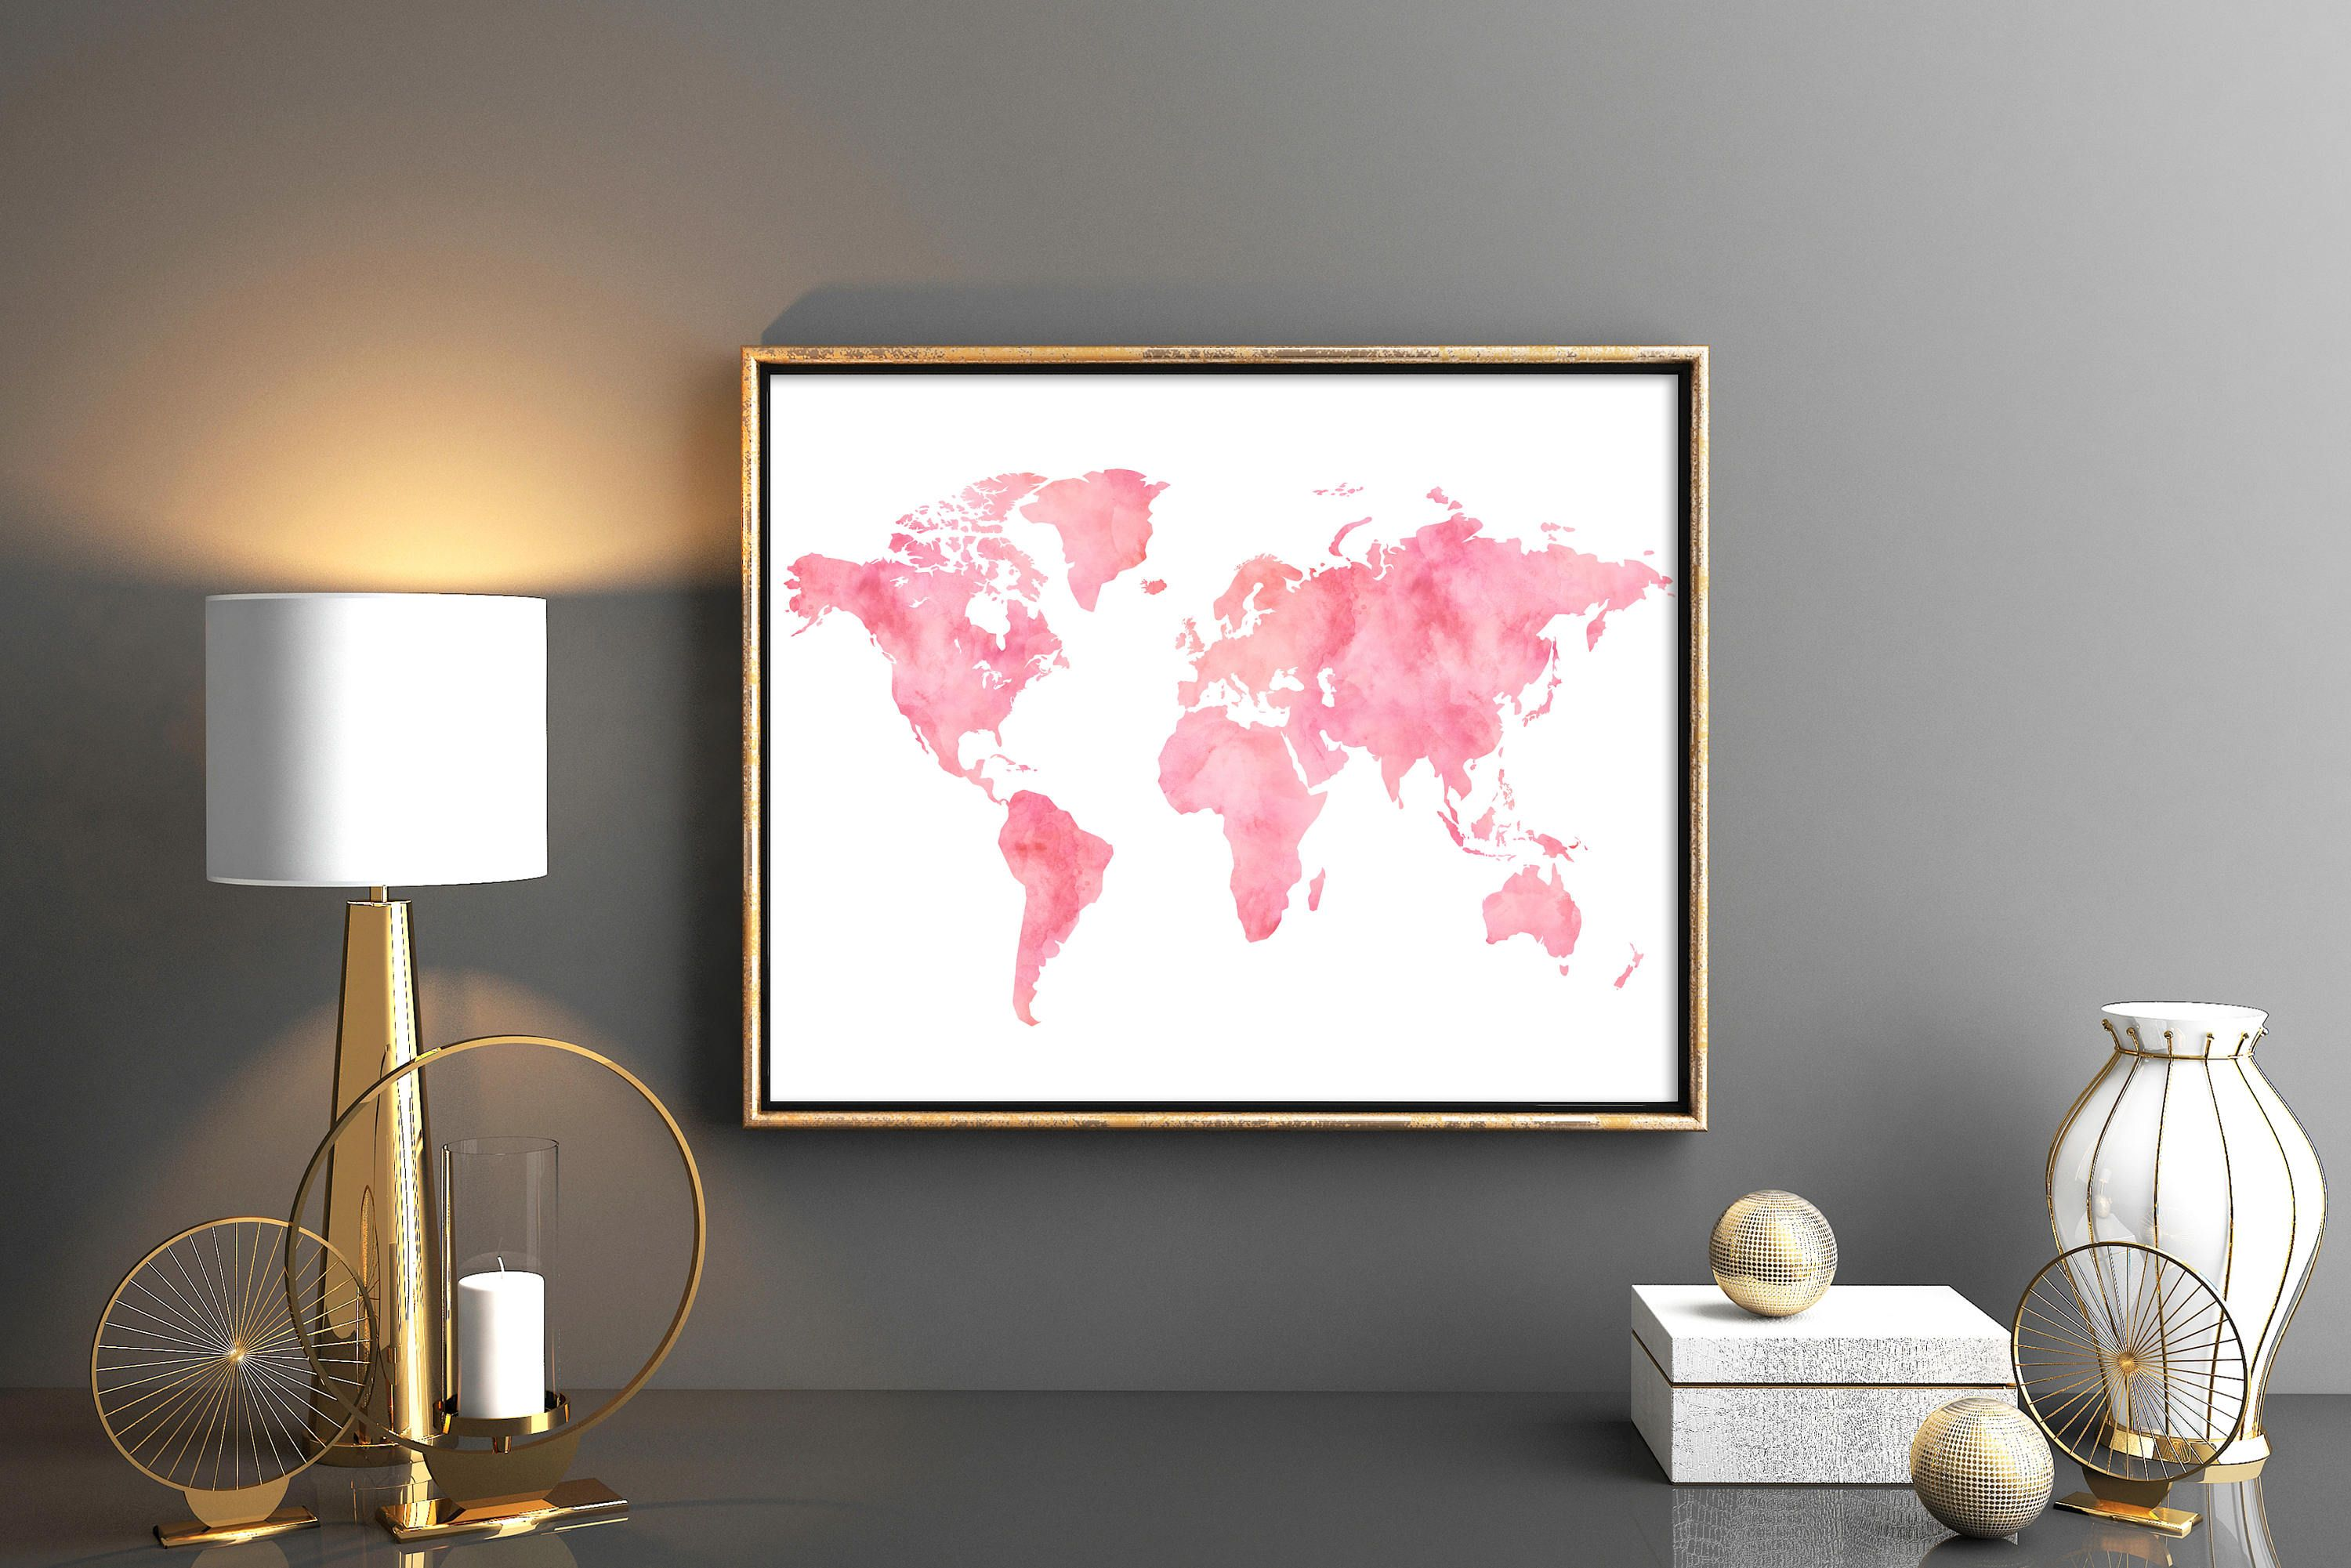 Blush pink world map decor watercolor world map download world map world map printable world map lovely blue turquoise world map wall art world map print watercolor weltkarte blue turquoise wall decor by kompostela on etsy sciox Images